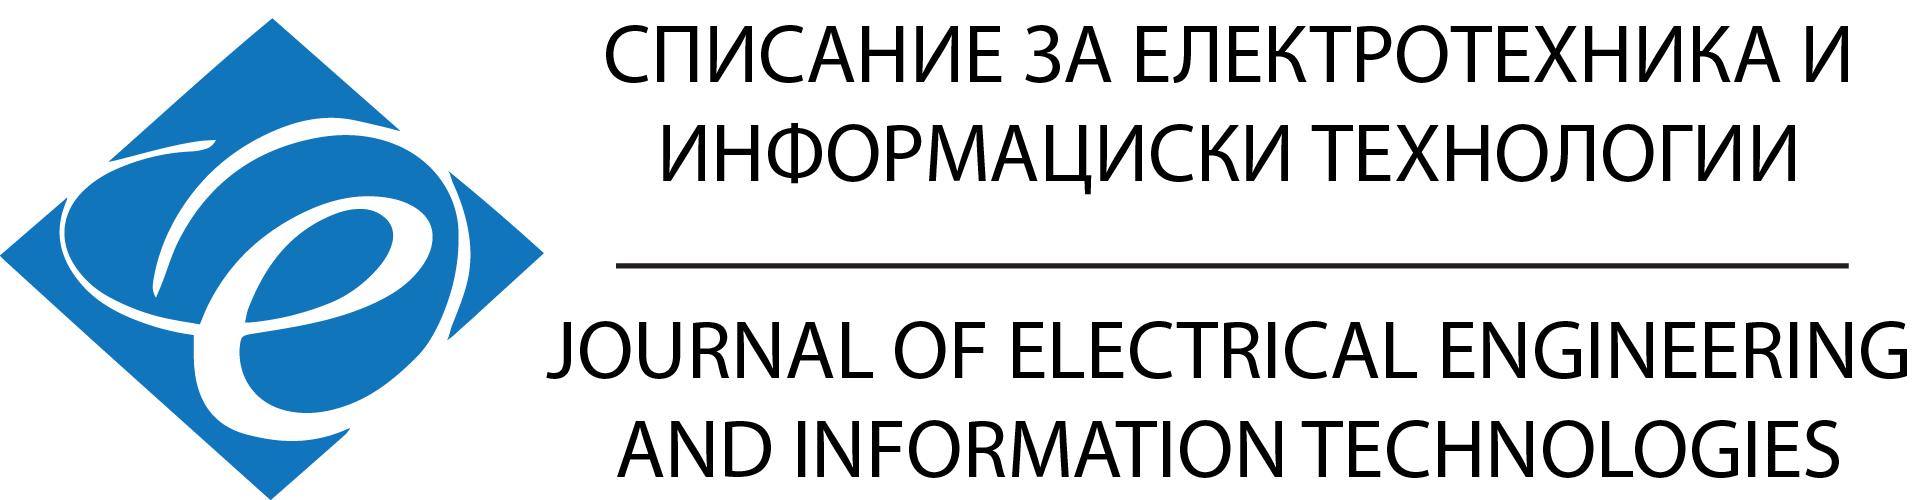 JOURNAL OF ELECTRICAL ENGINEERING AND INFORMATION TECHNOLOGIES